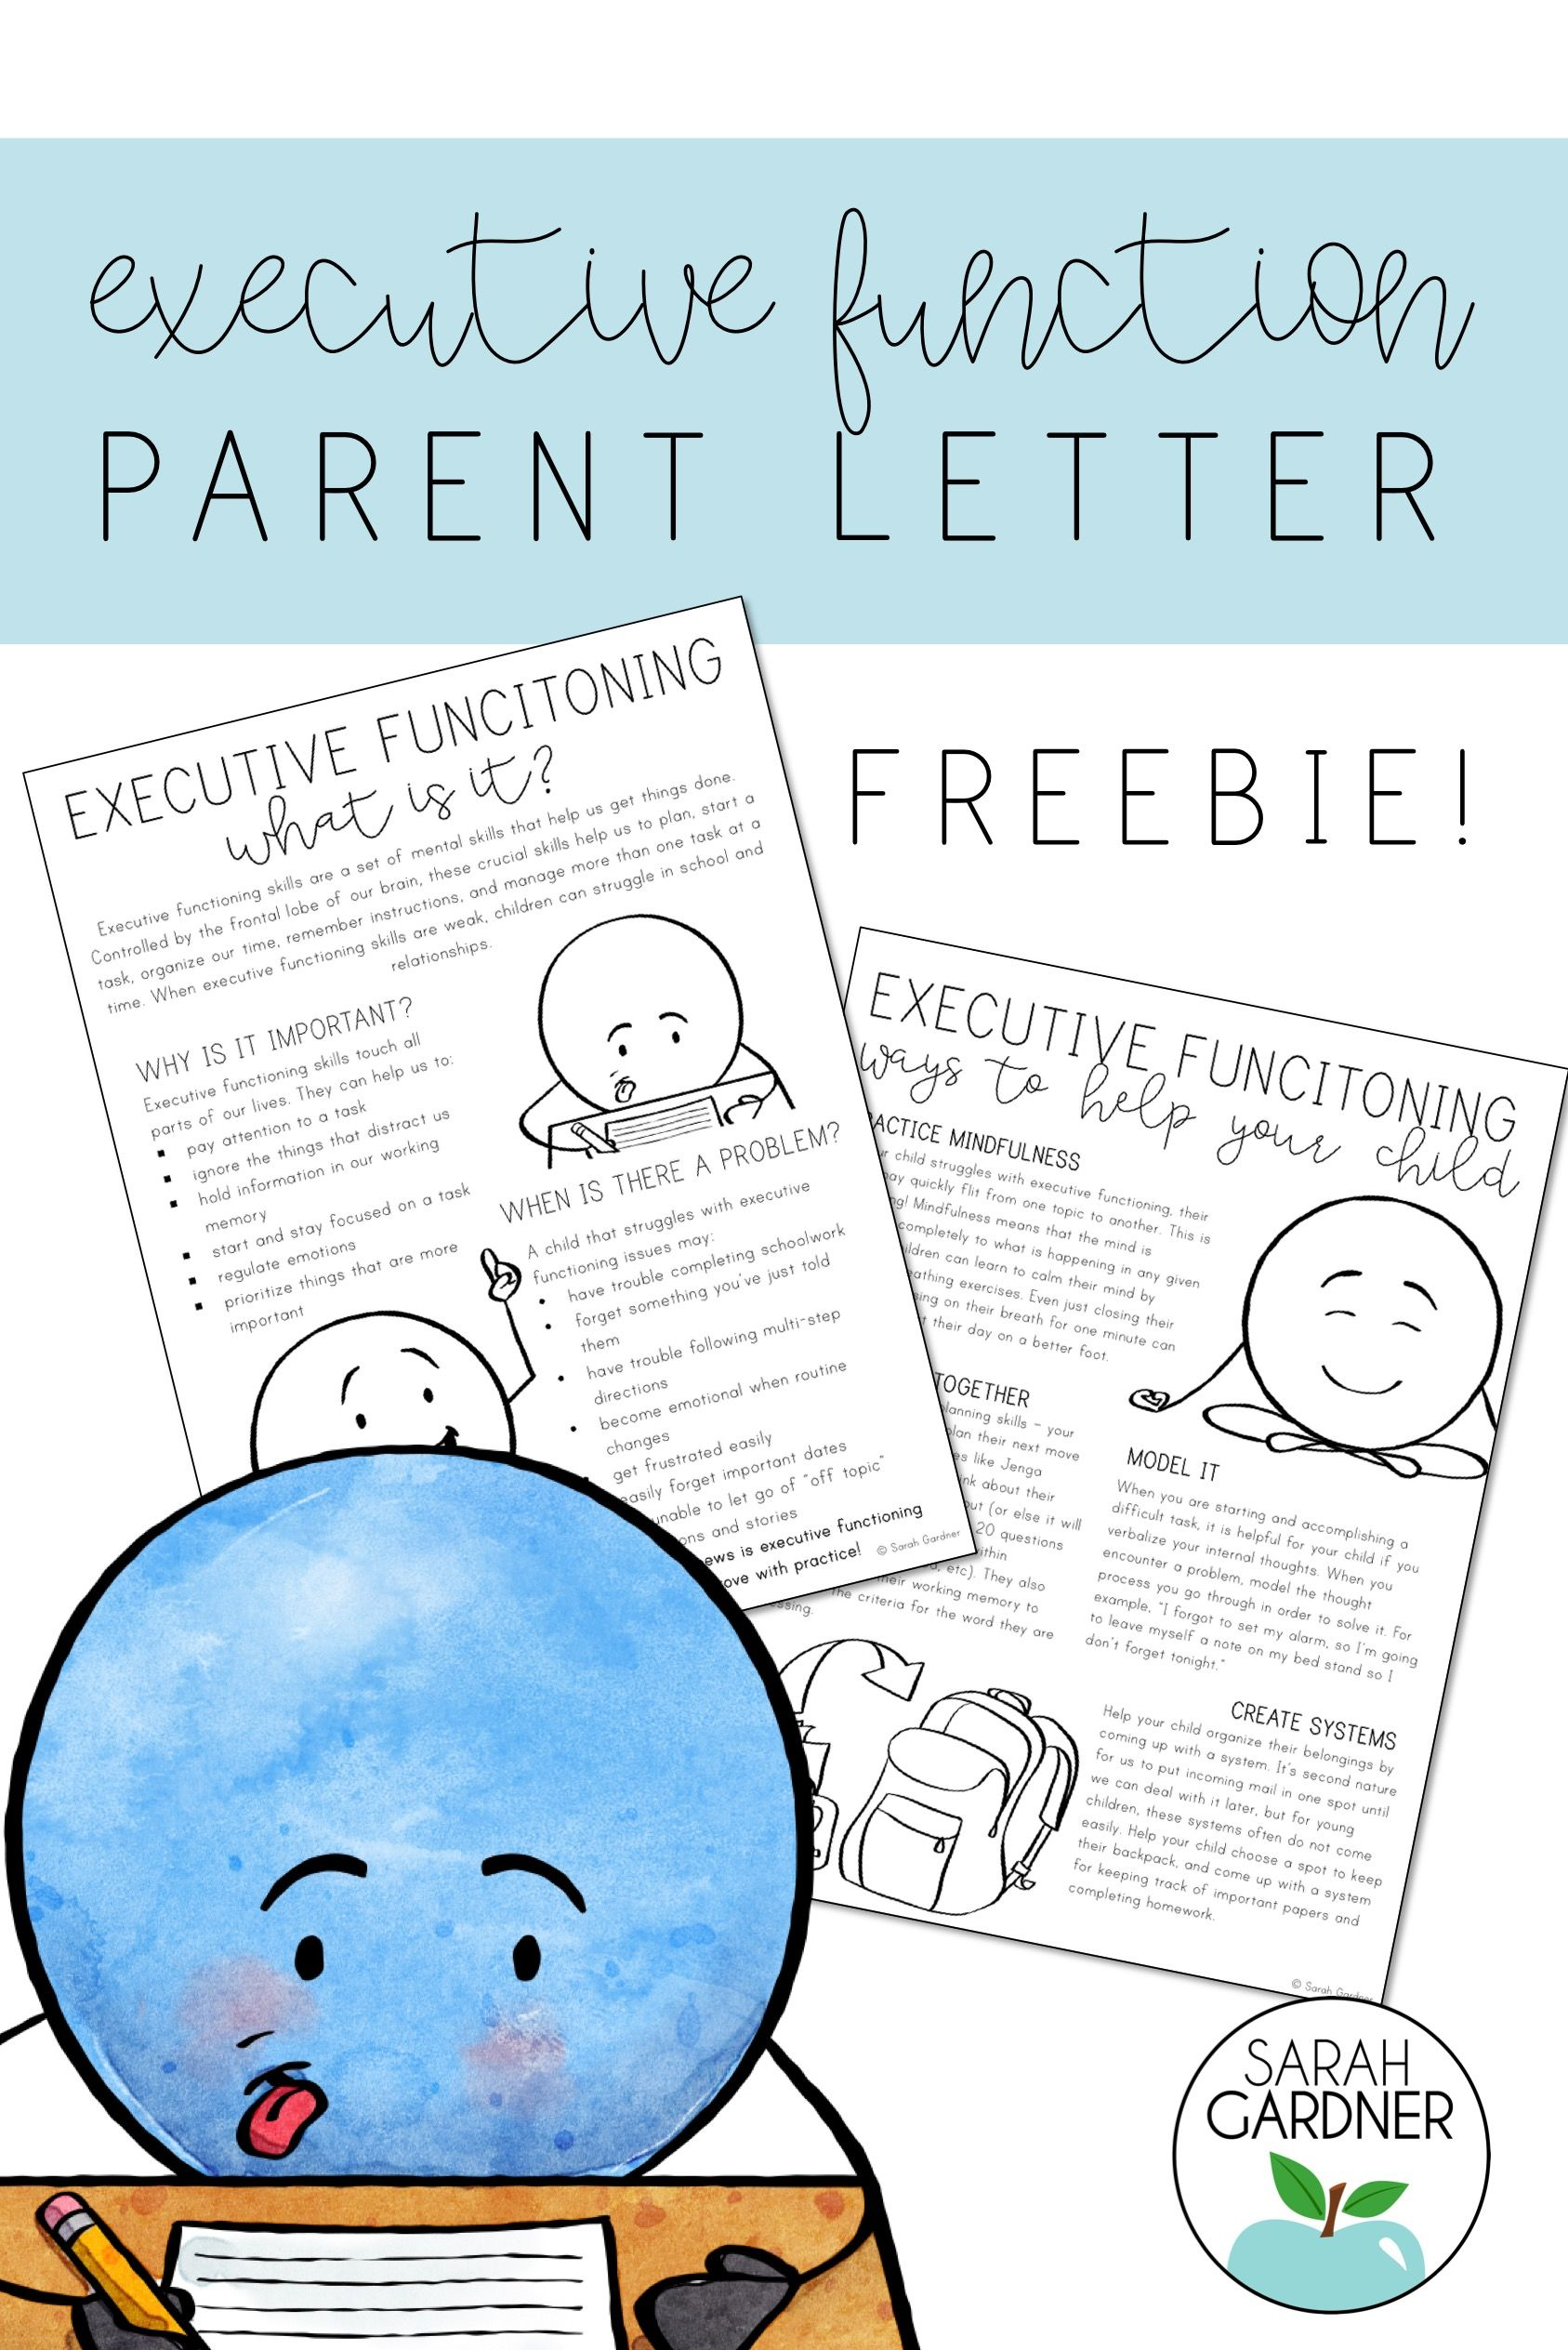 Executive Functioning Parent Letter Freebie